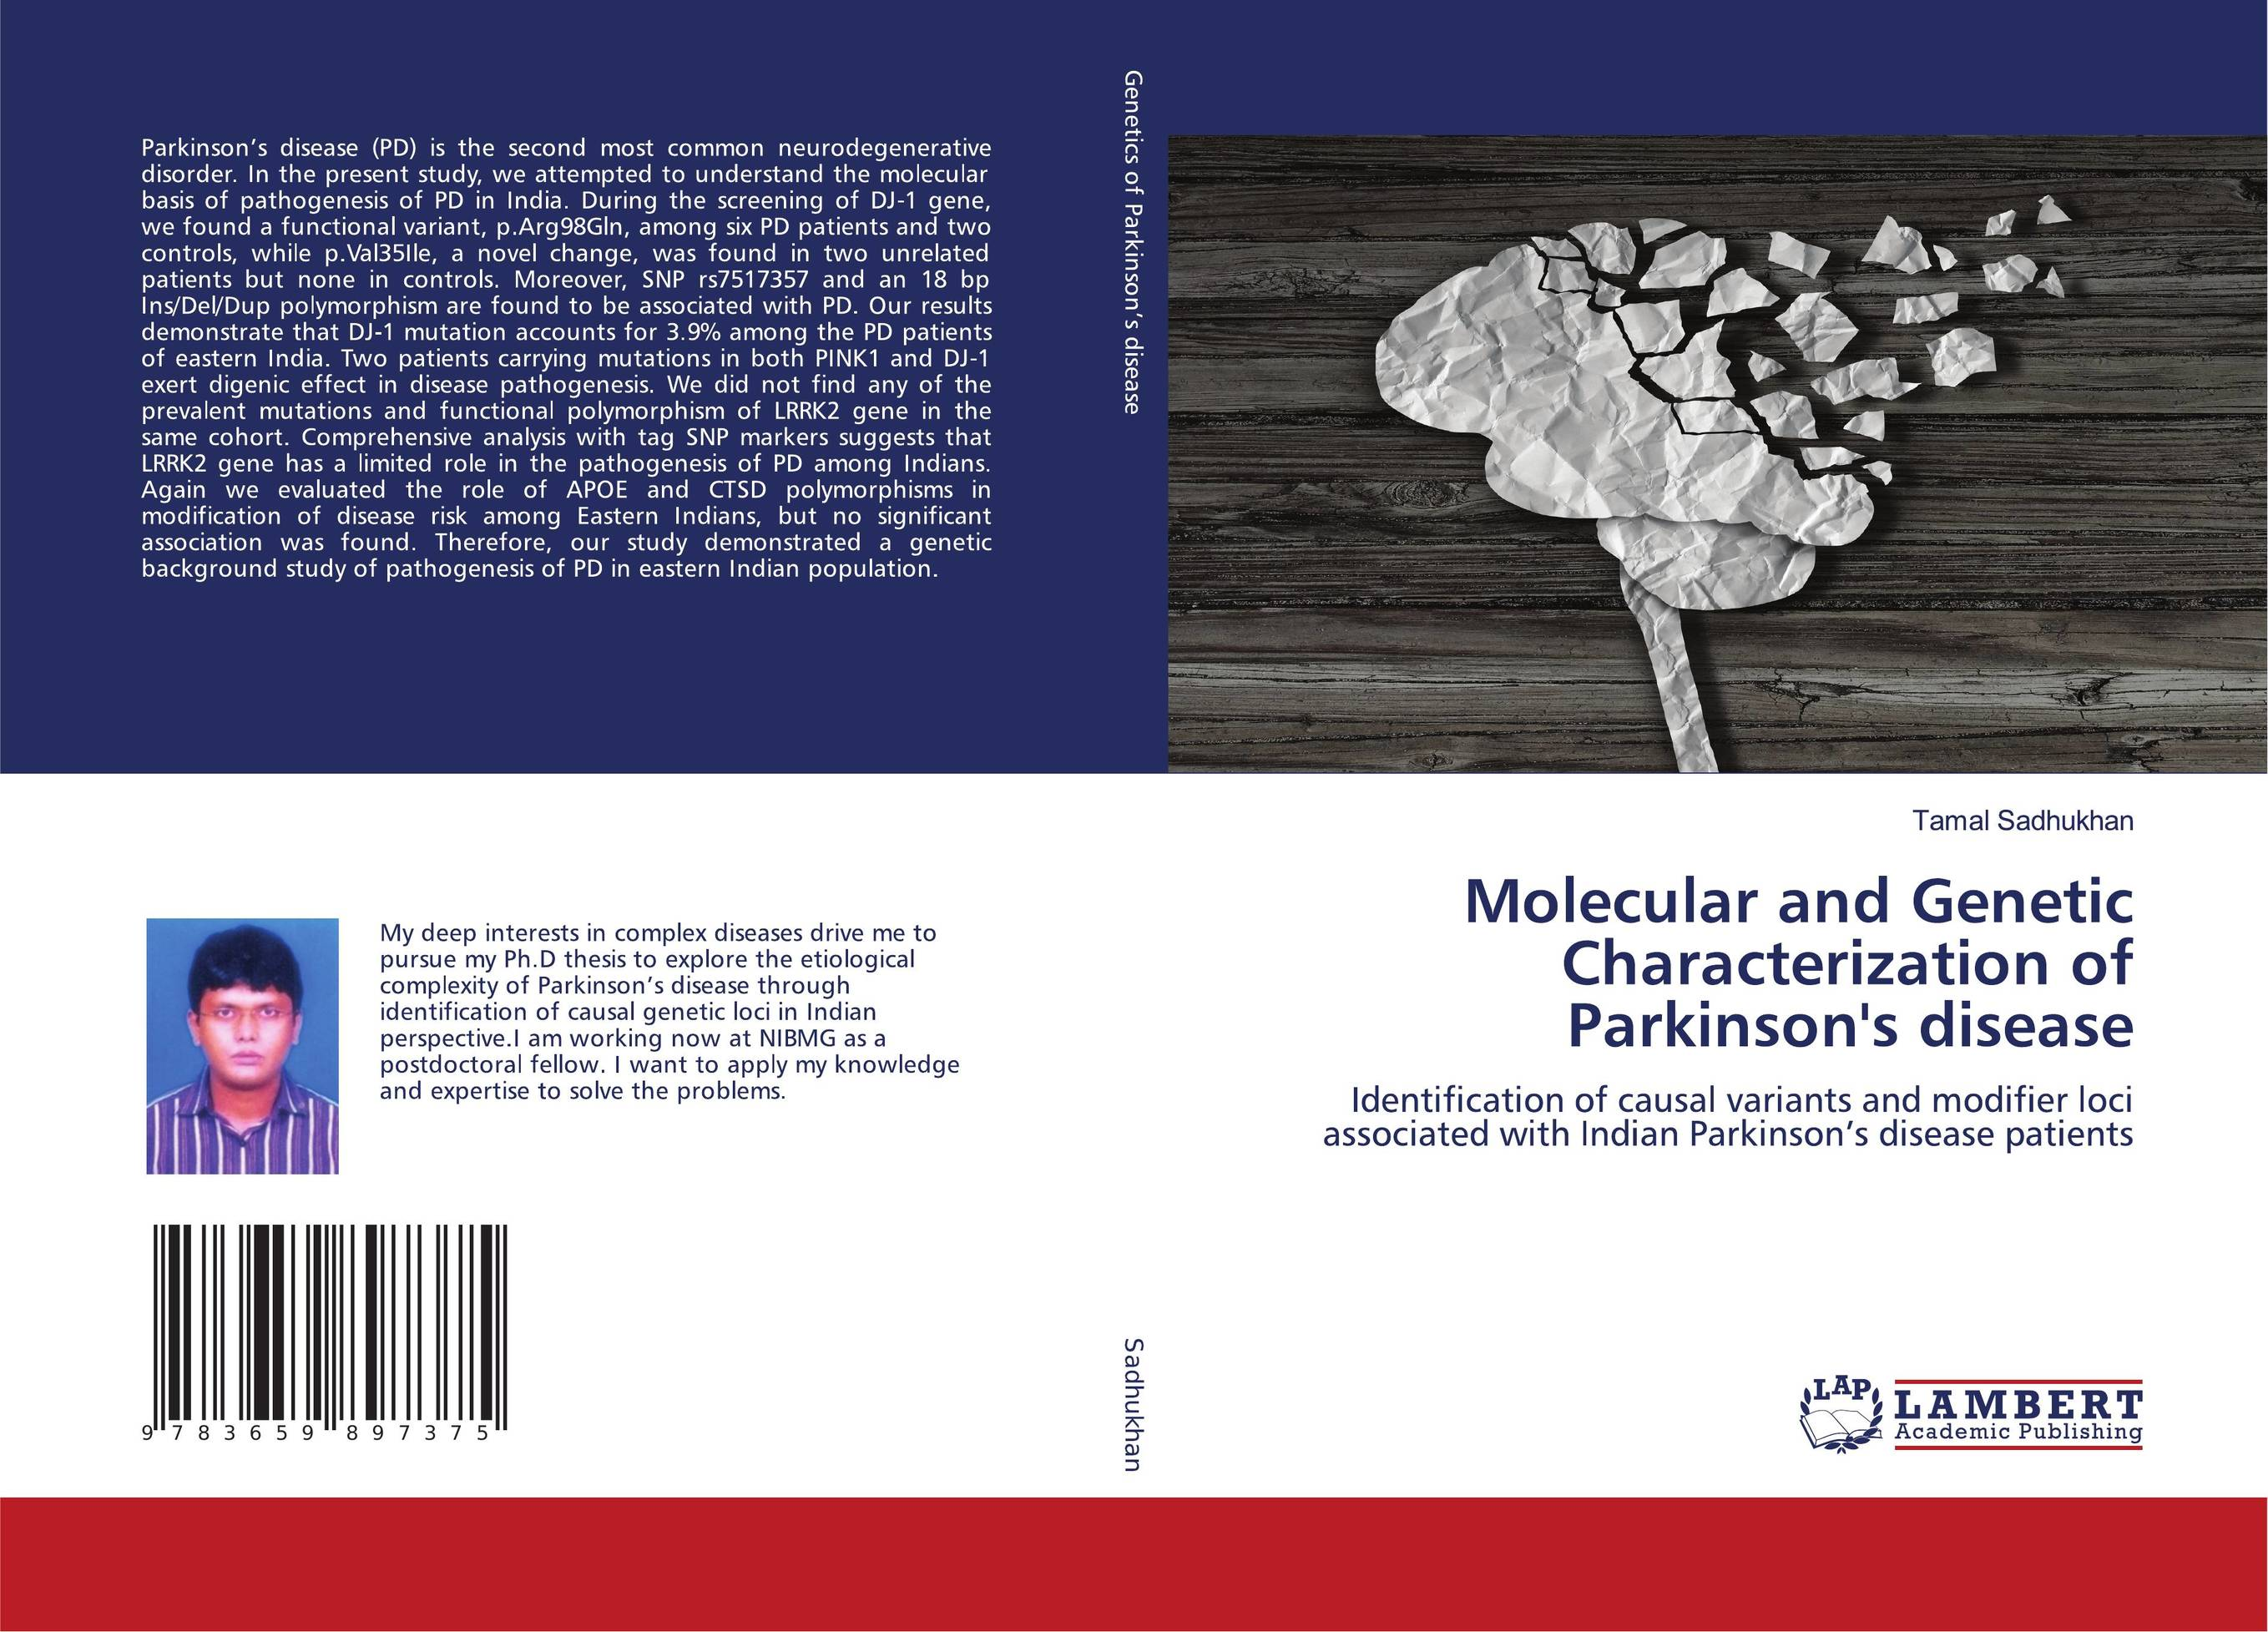 the importance of basic knowledge about the neurodegenerative disease parkinsons disease In the past decade, there has been increased information and knowledge that has enhanced physicians' understanding of and potential management for neurodegenerative disorders, including alzheimer's disease, parkinson's disease and huntington's disease.